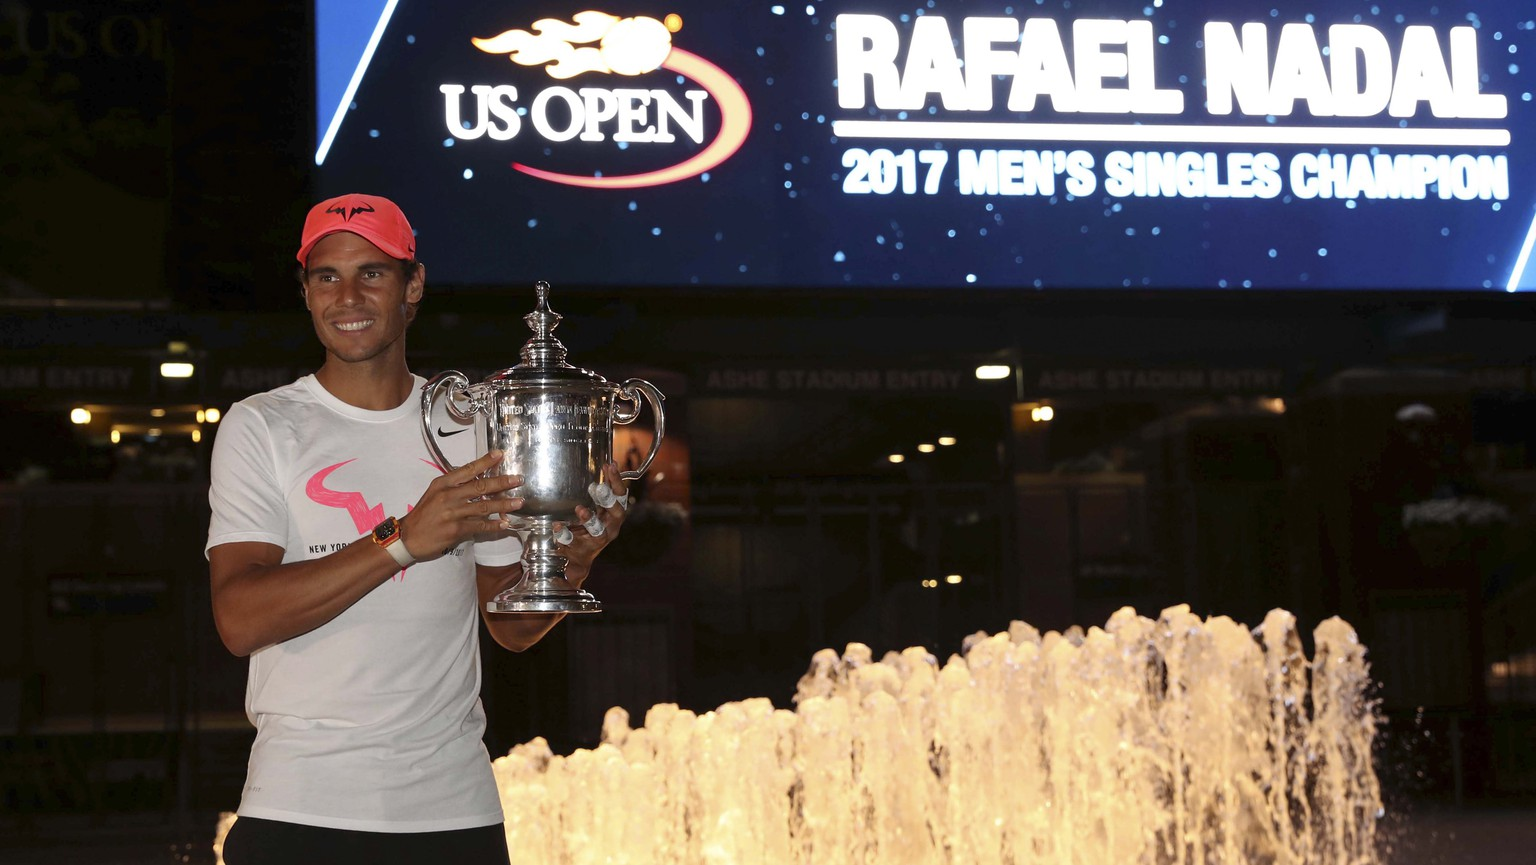 epa06197495 Rafael Nadal of Spain poses with his championship trophy during a photo opportunity after defeating Kevin Anderson of South Africa to win the US Open Tennis Championships men's final round match at the USTA National Tennis Center in Flushing Meadows, New York, USA, 10 September 2017.  EPA/DANIEL MURPHY